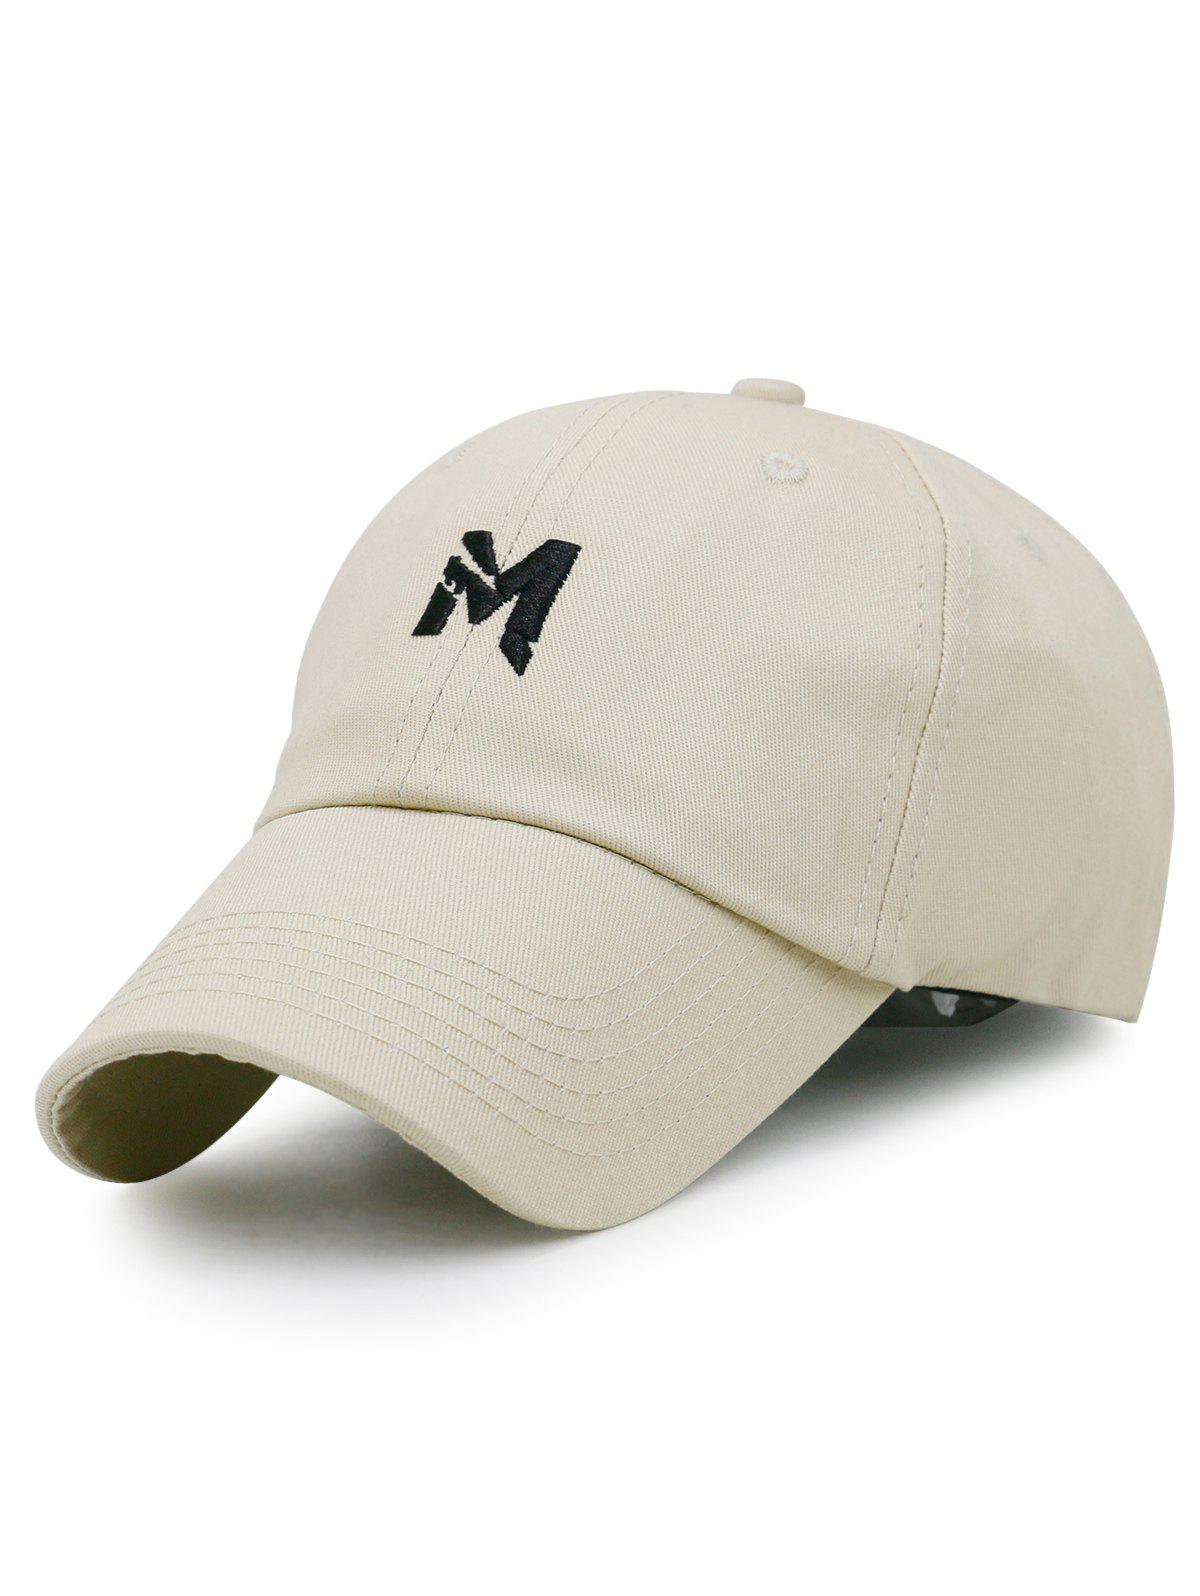 Simple Letter M Pattern Adjustable Baseball Cap unisex men women m embroidery snapback hats hip hop adjustable baseball cap hat